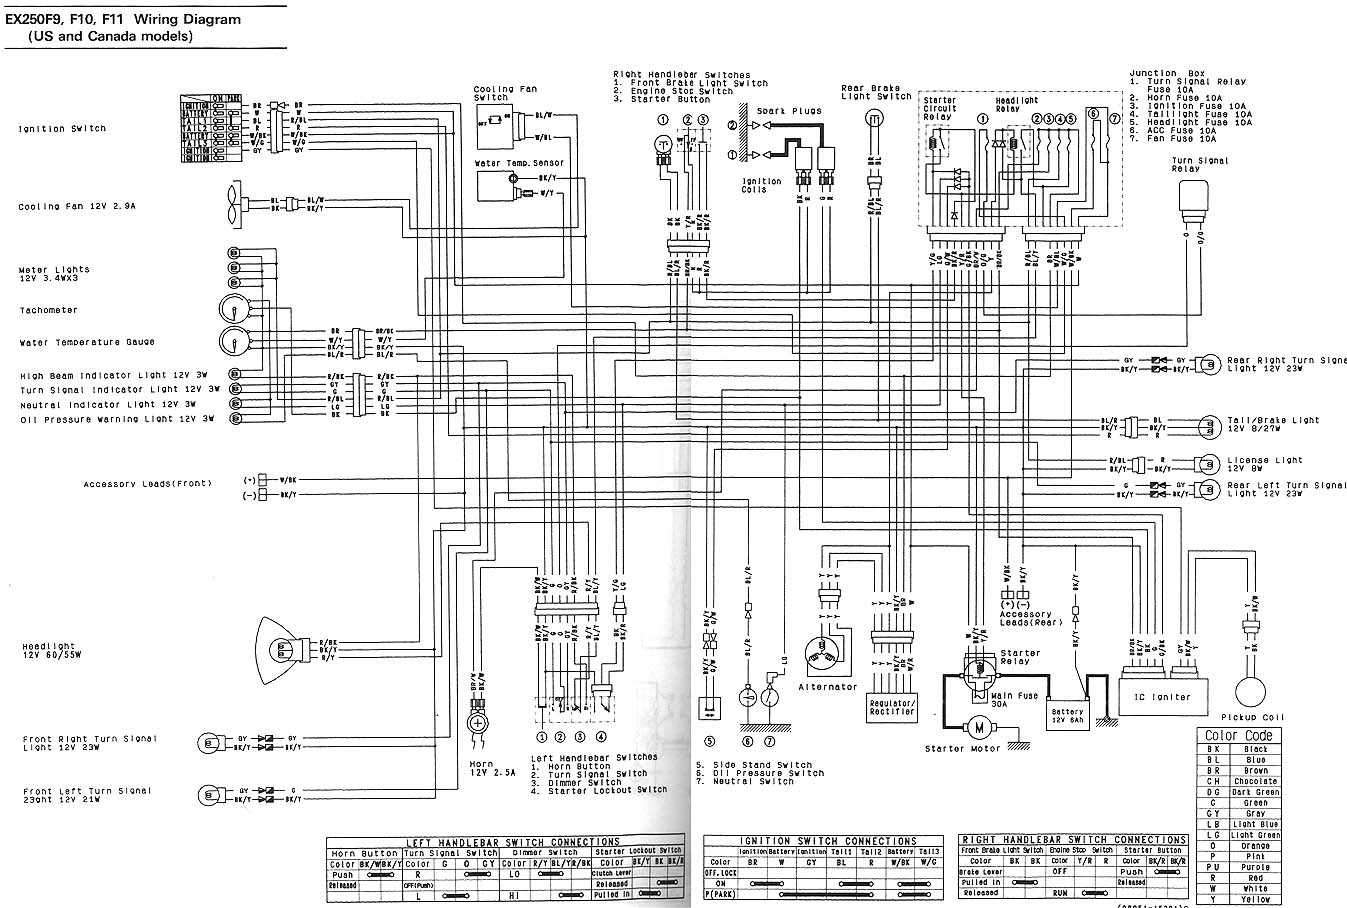 Wiring Diagram For A Honda Trx 250 4 Wheeler from www.sportbikes.net